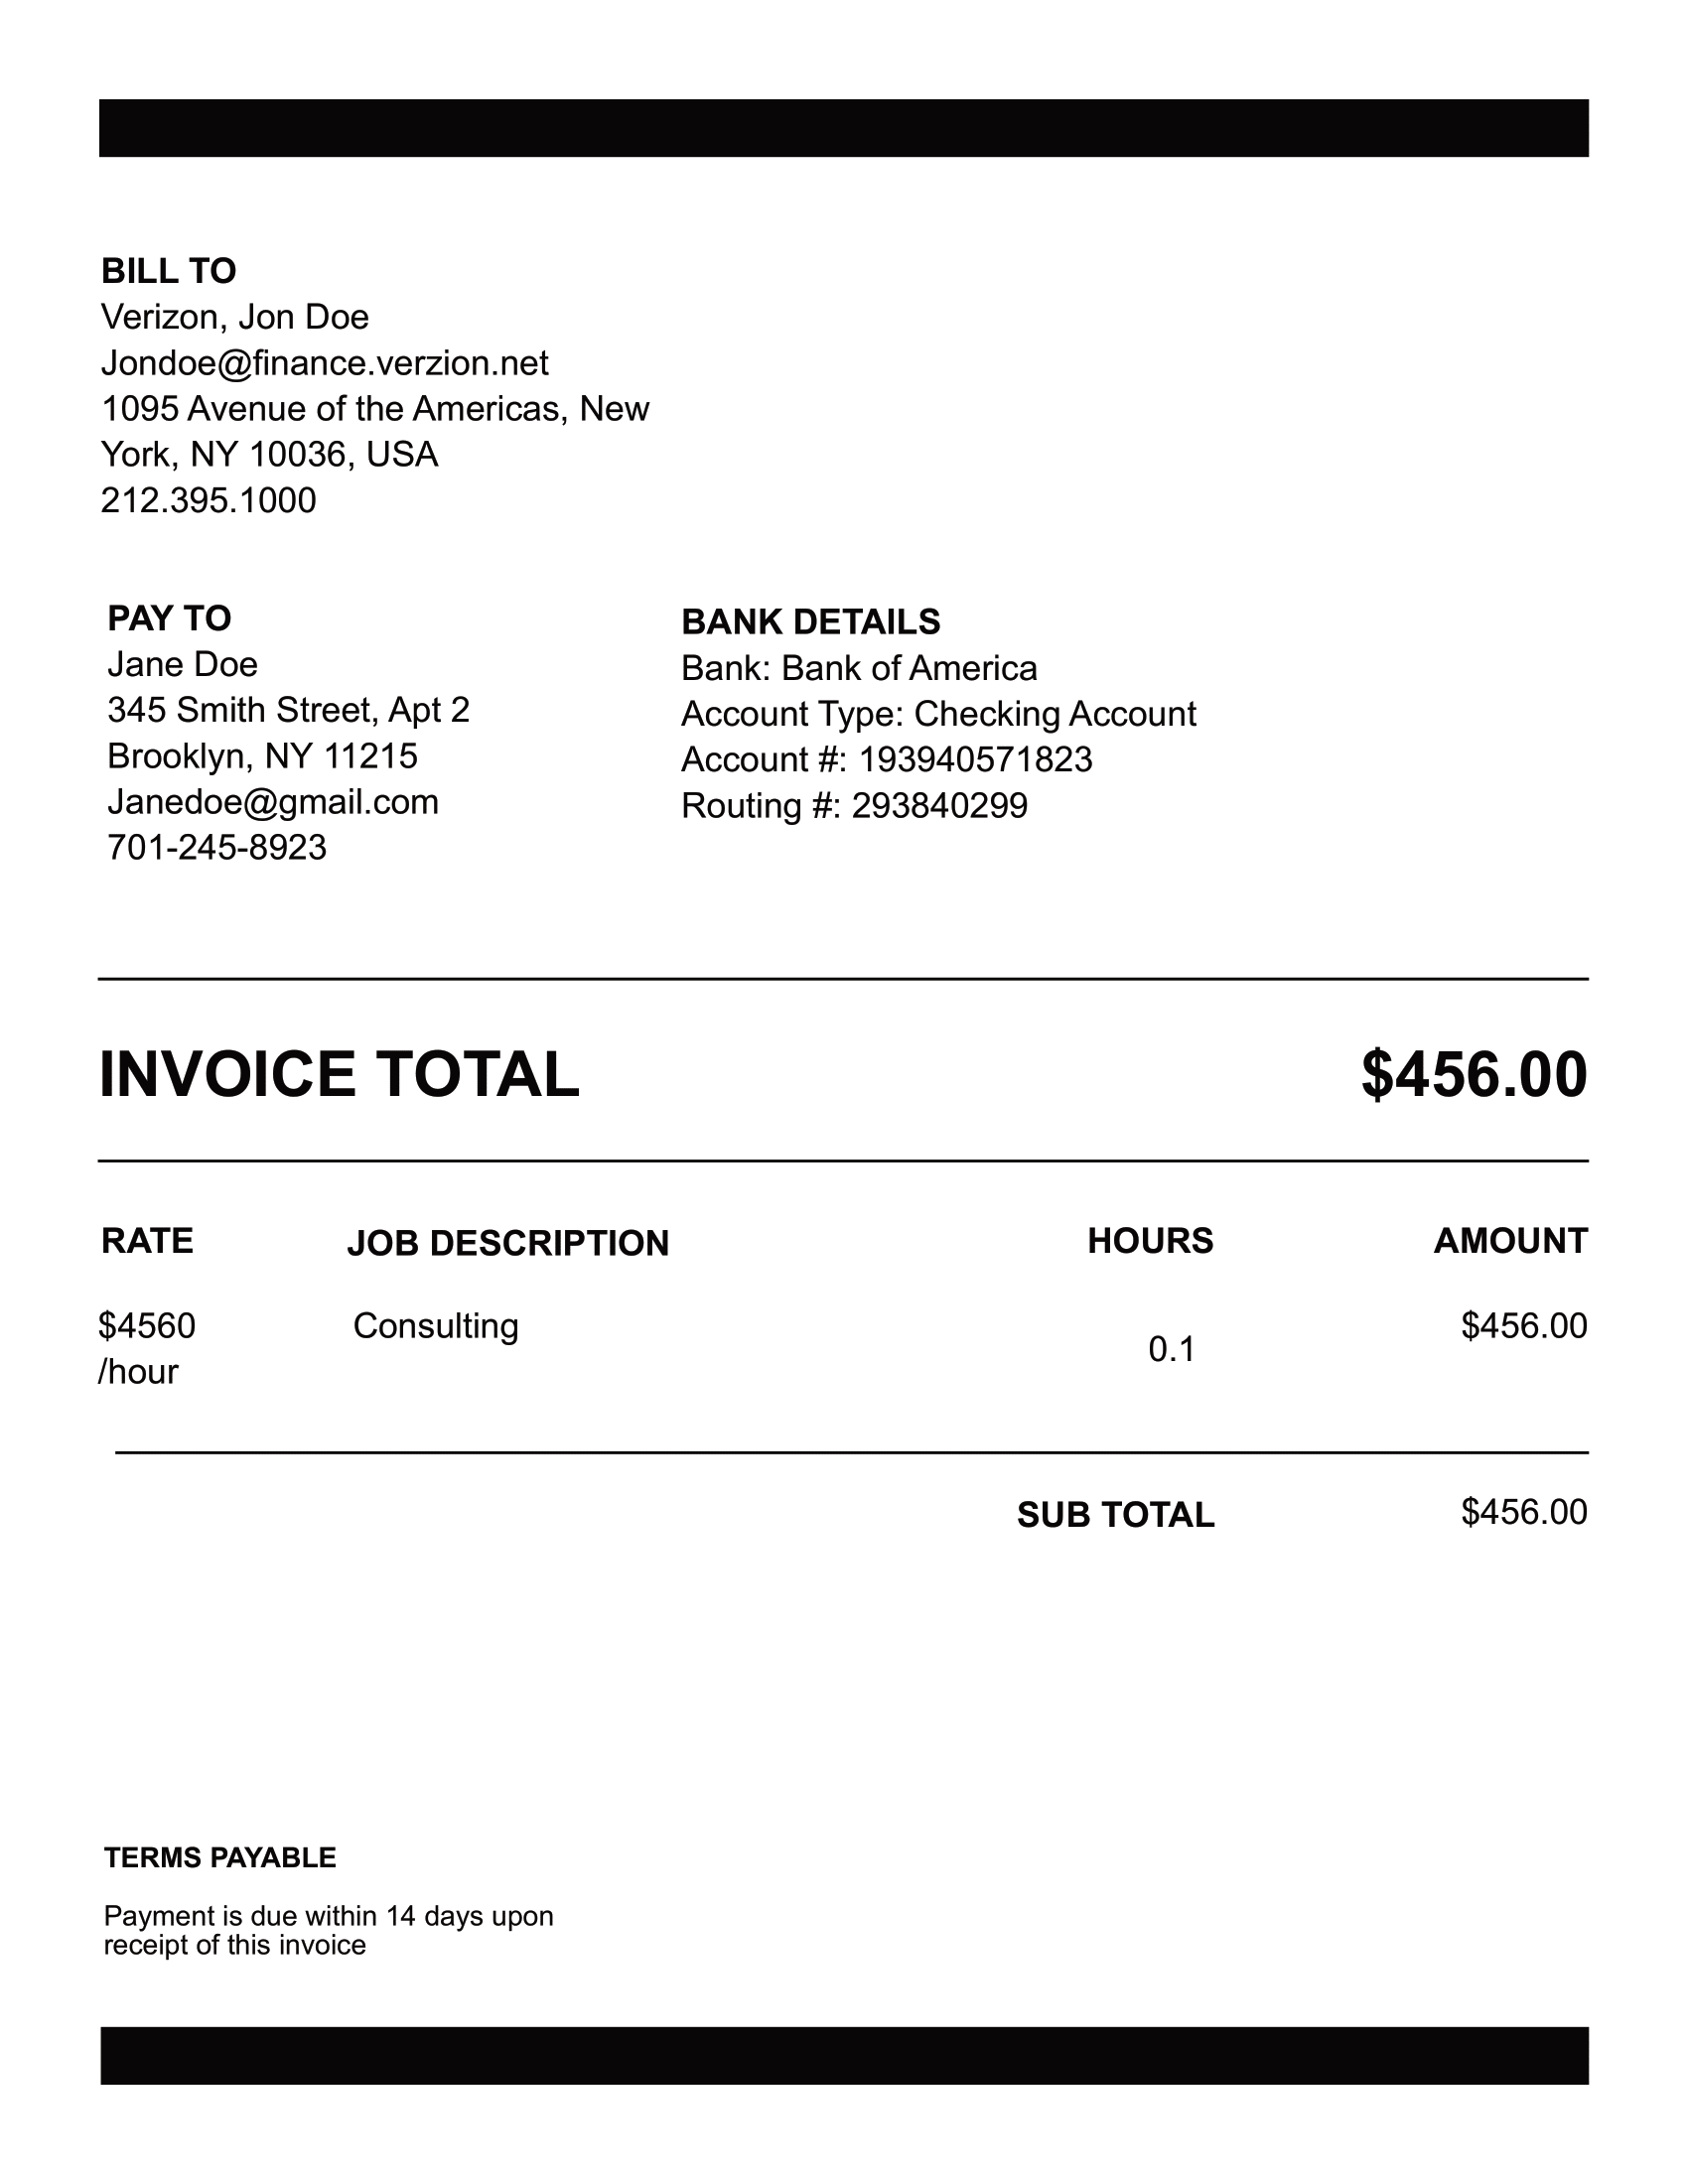 download invoice example